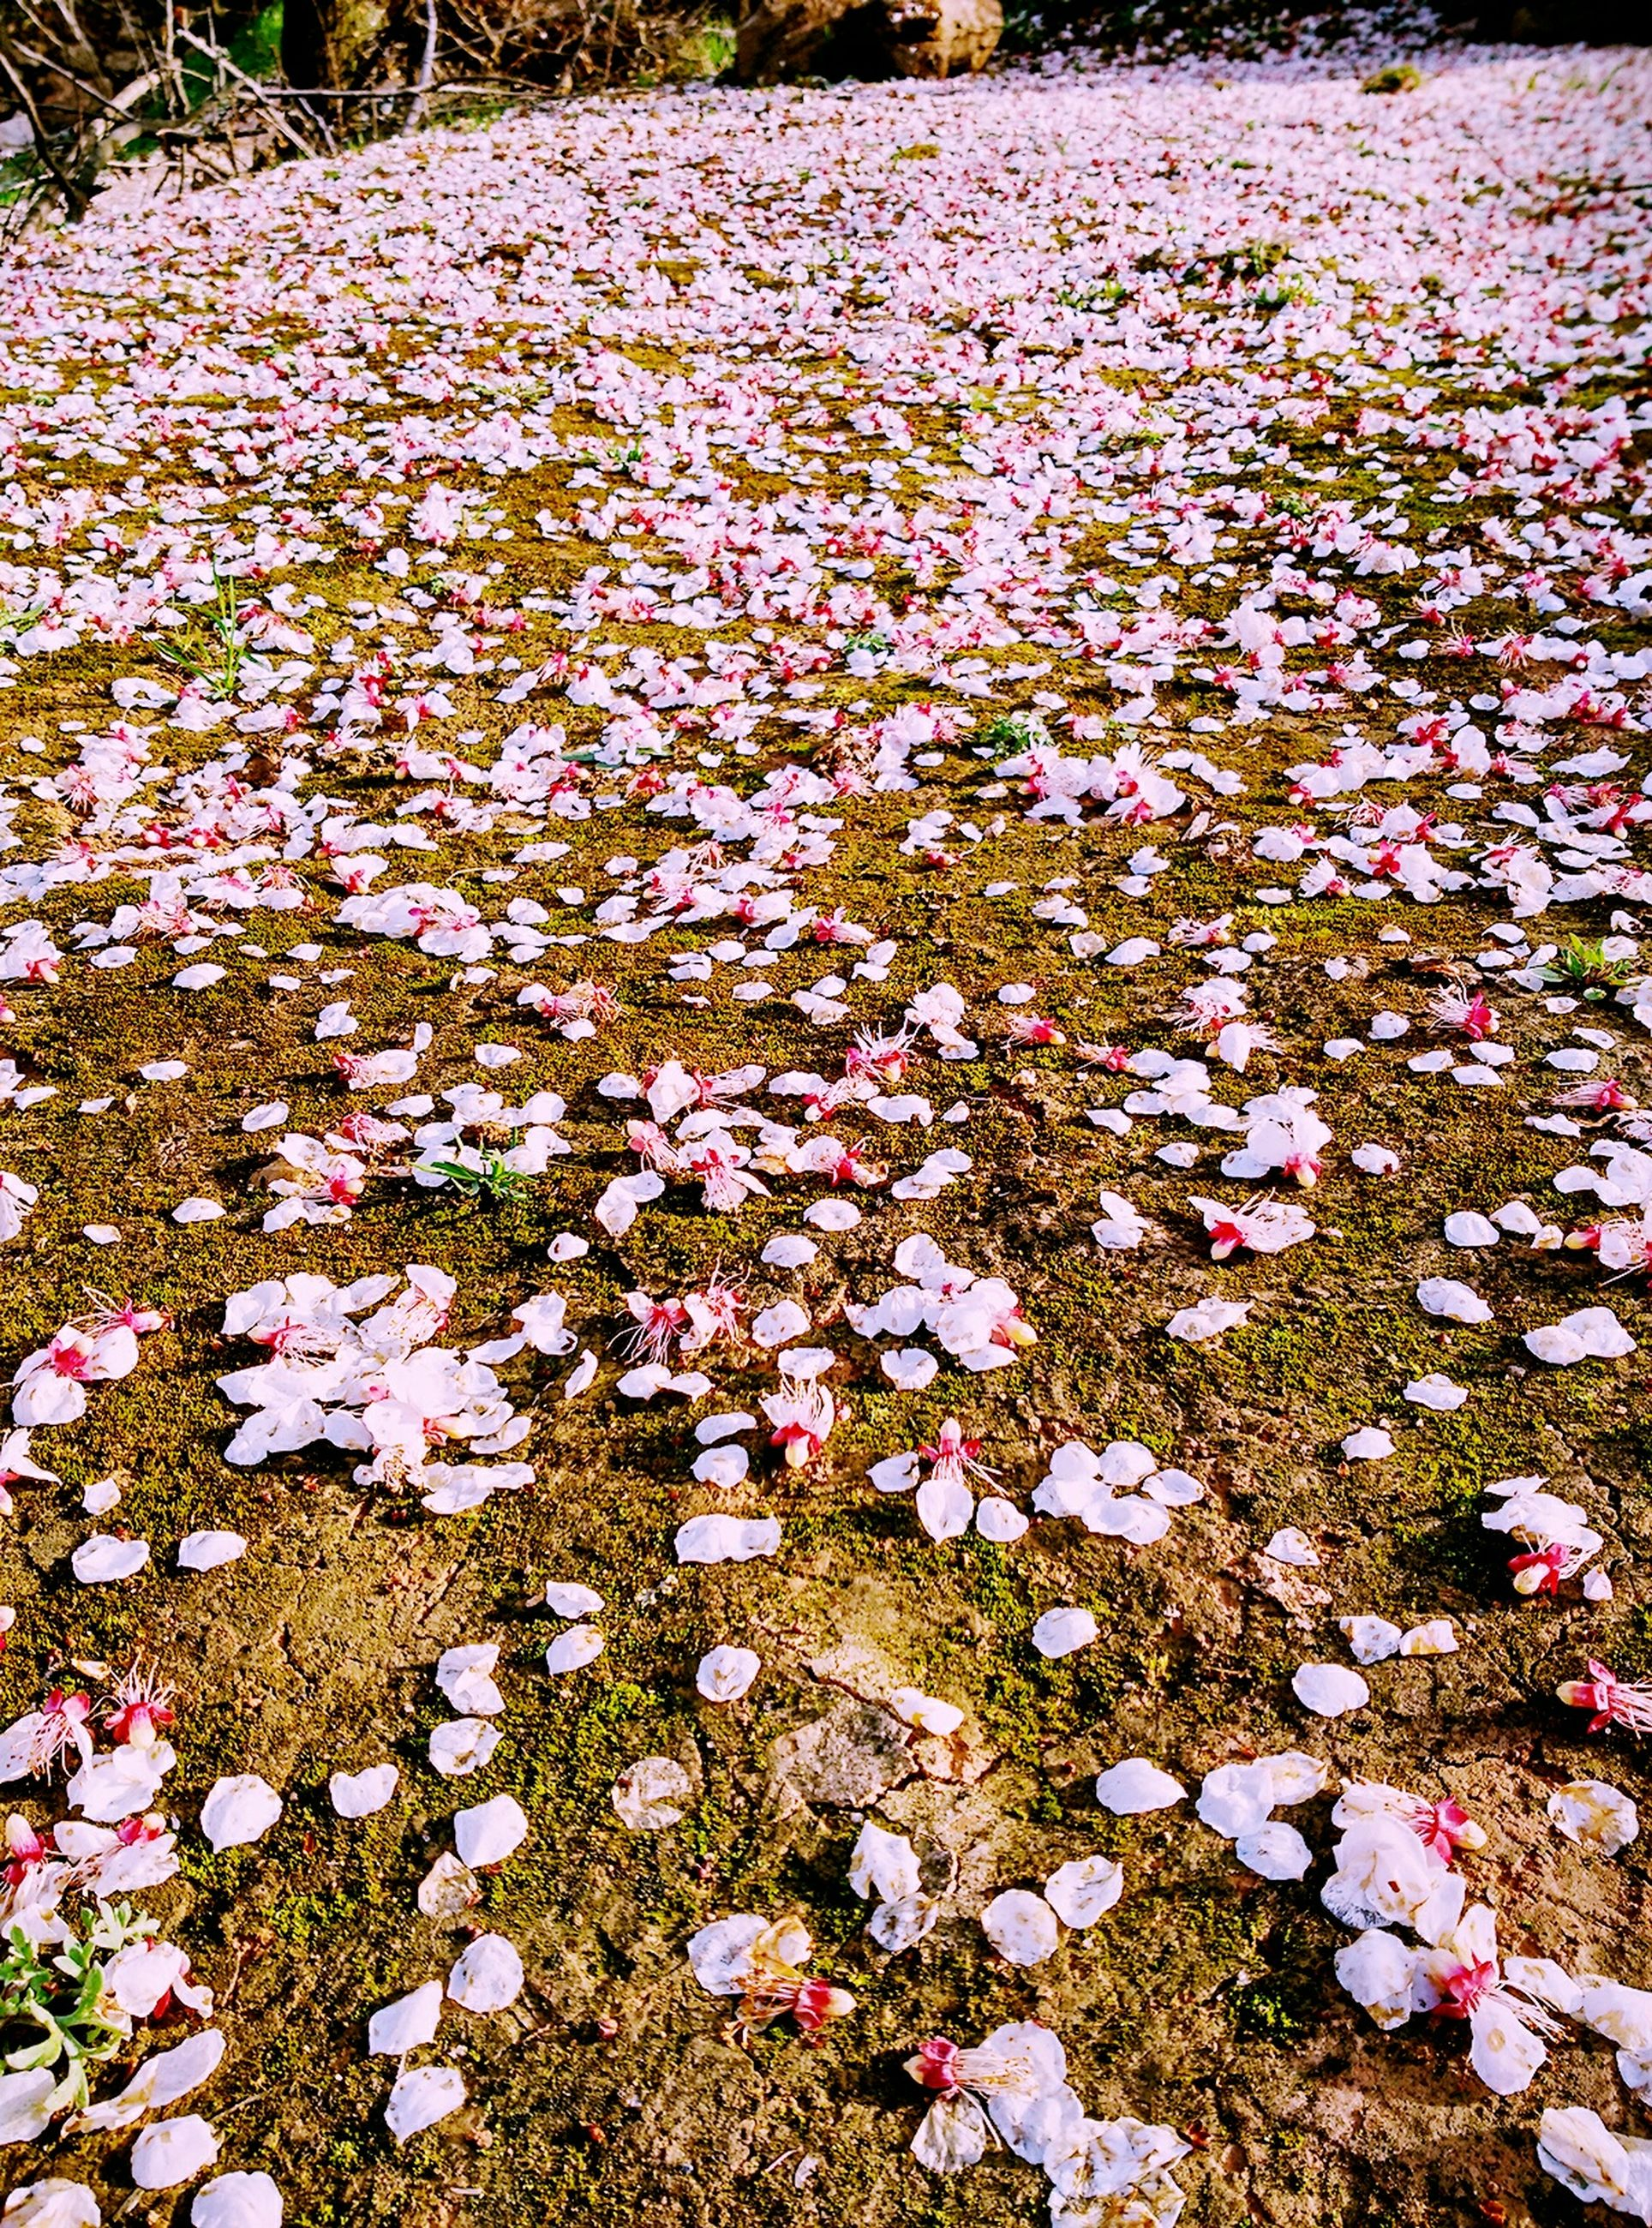 flower, growth, beauty in nature, nature, freshness, fragility, abundance, high angle view, blossom, field, petal, springtime, tree, day, plant, blooming, season, tranquility, pink color, no people